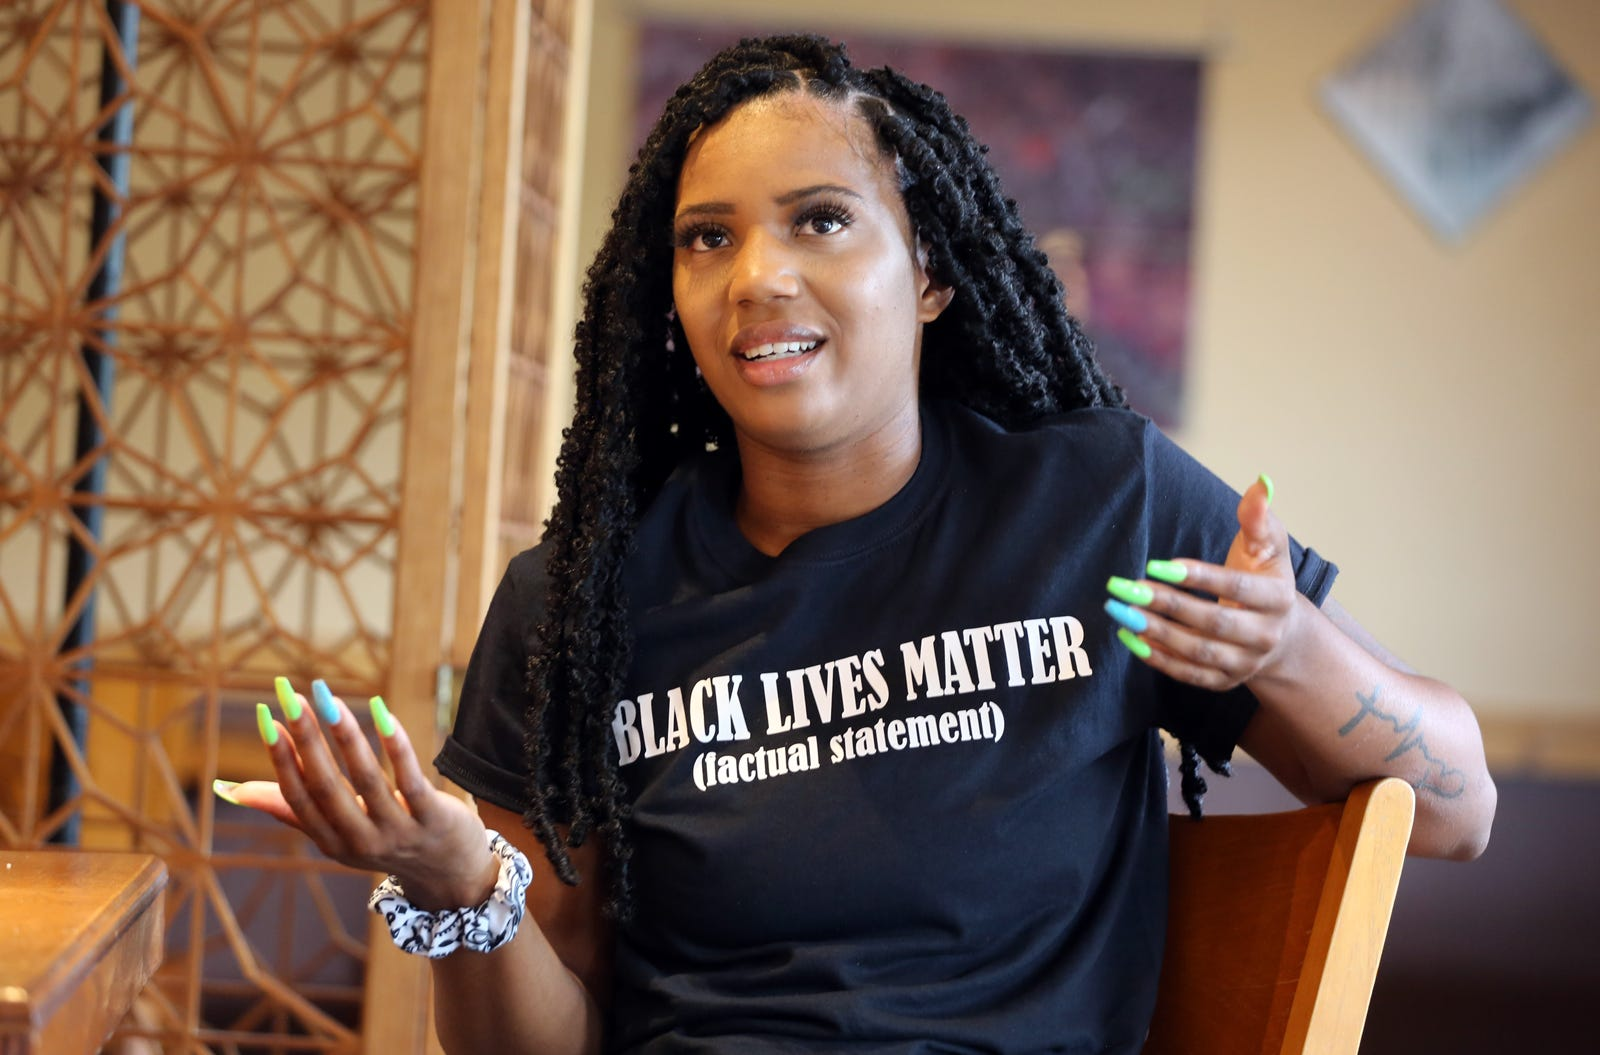 Alexsis Vinson shares her thoughts on being a responsible activist in Shelby, North Carolina.